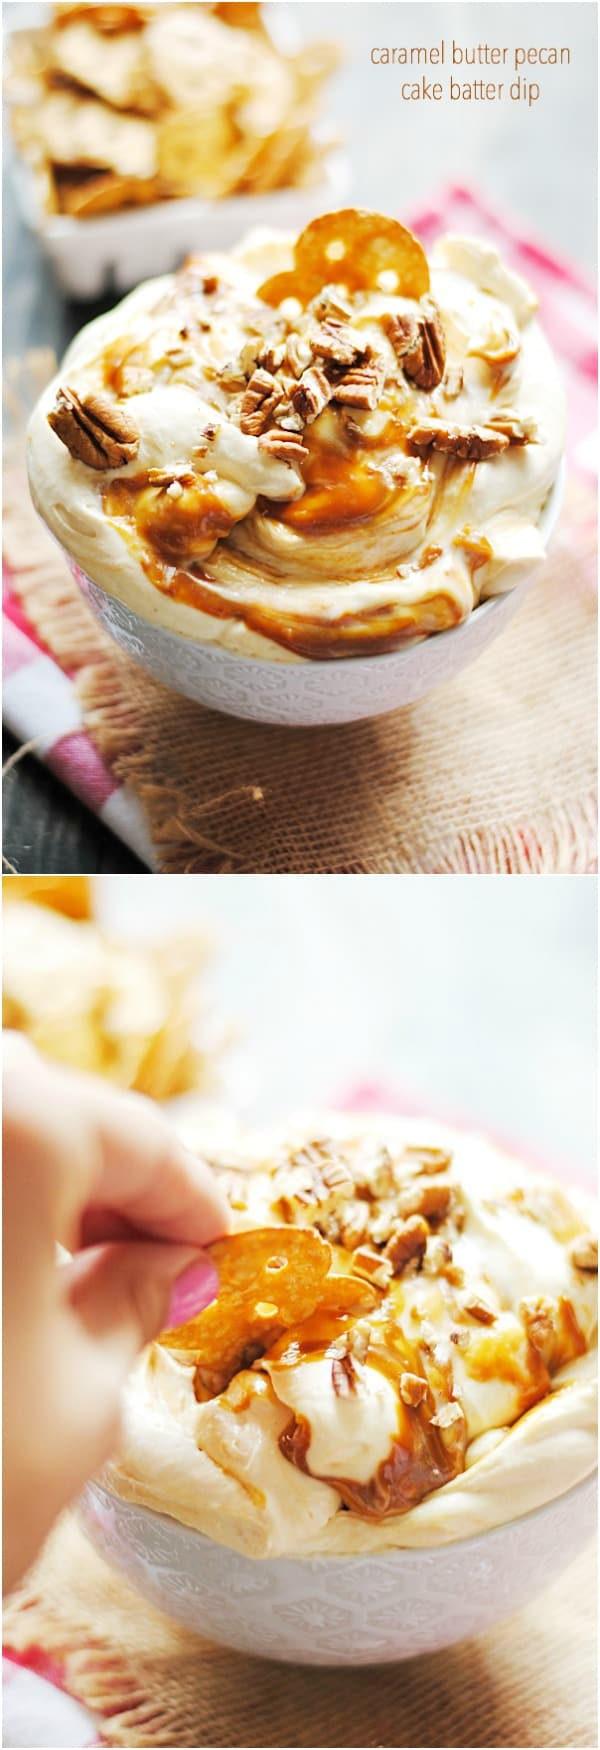 Caramel Butter Pecan Cake Batter Dip is so easy and a total crowd pleaser! #safeway #sweepstakes #ad